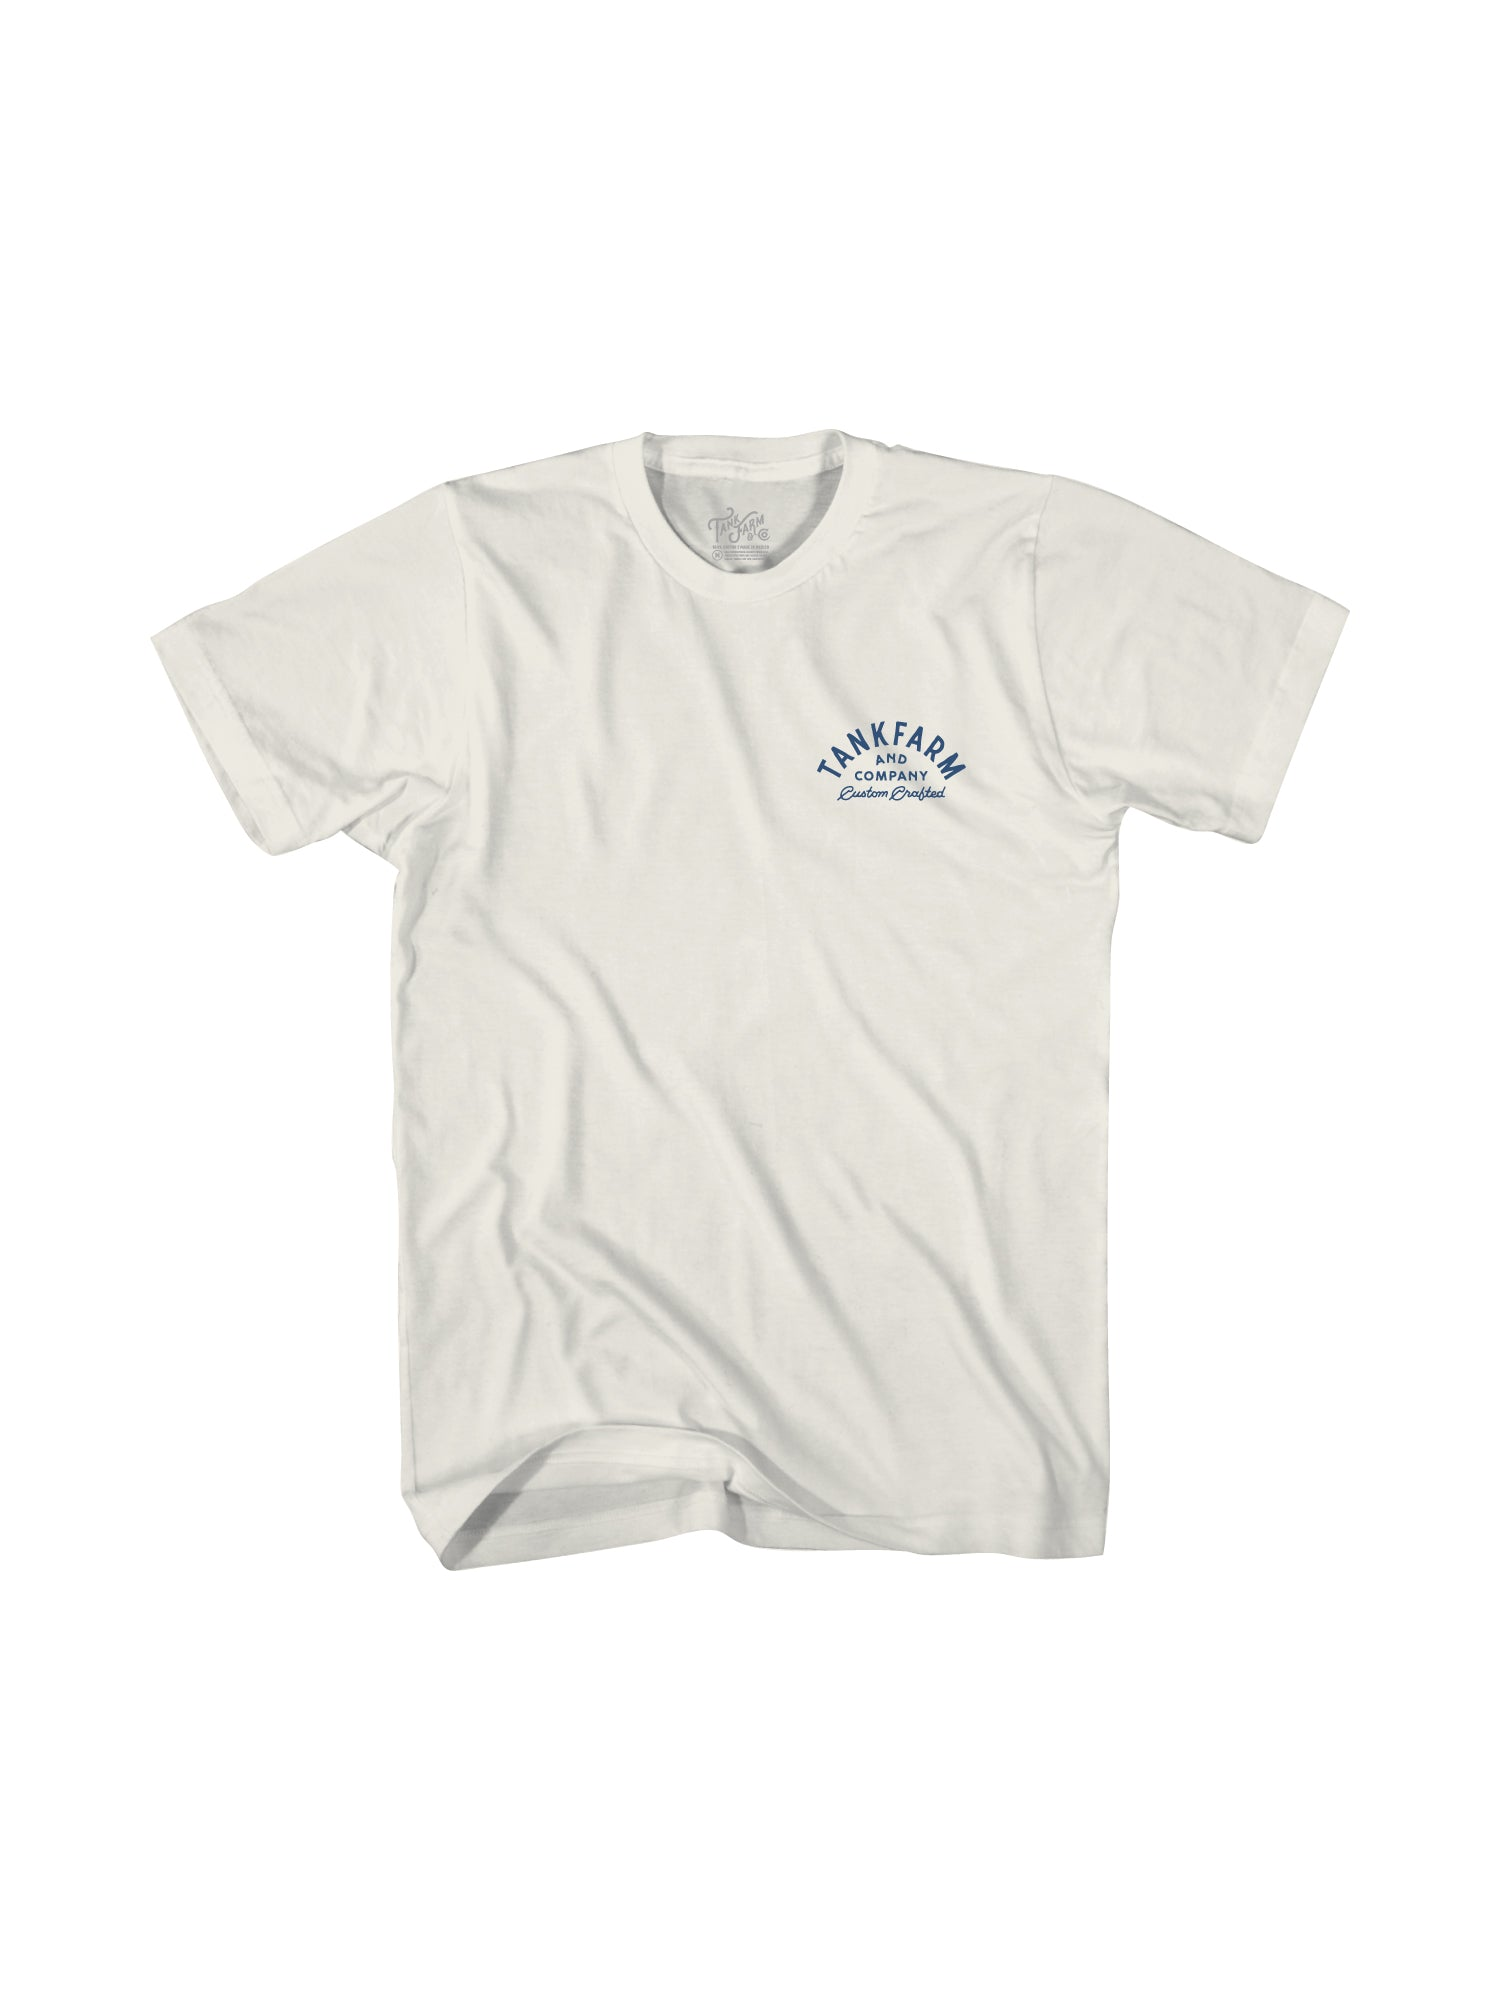 CRAFTED IN SB - WHITE/NAVY - Tankfarm & Co.